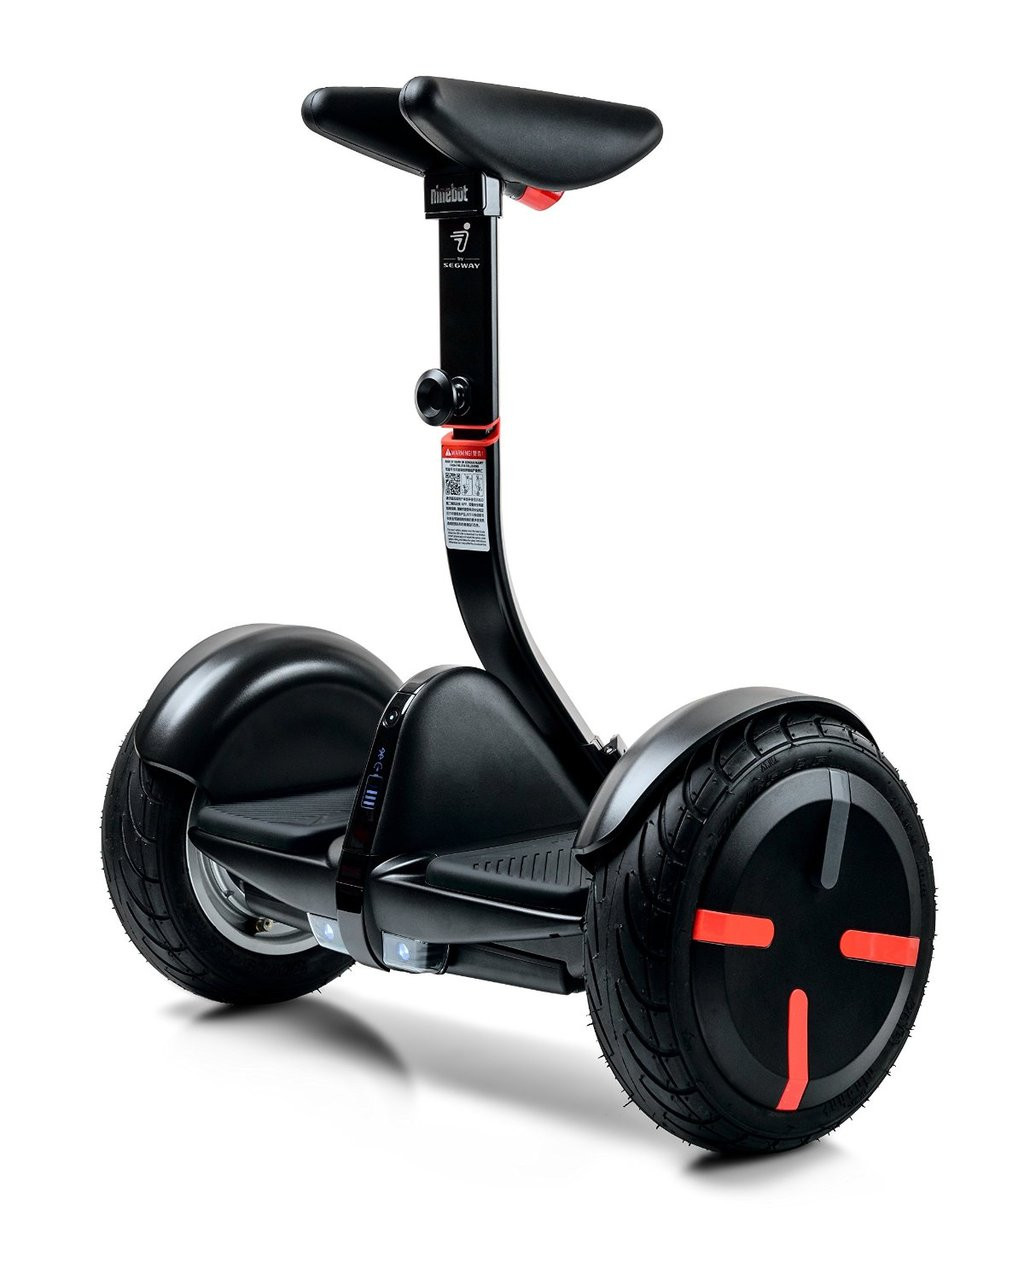 ninebot by segway minipro self balancing electric scooter. Black Bedroom Furniture Sets. Home Design Ideas